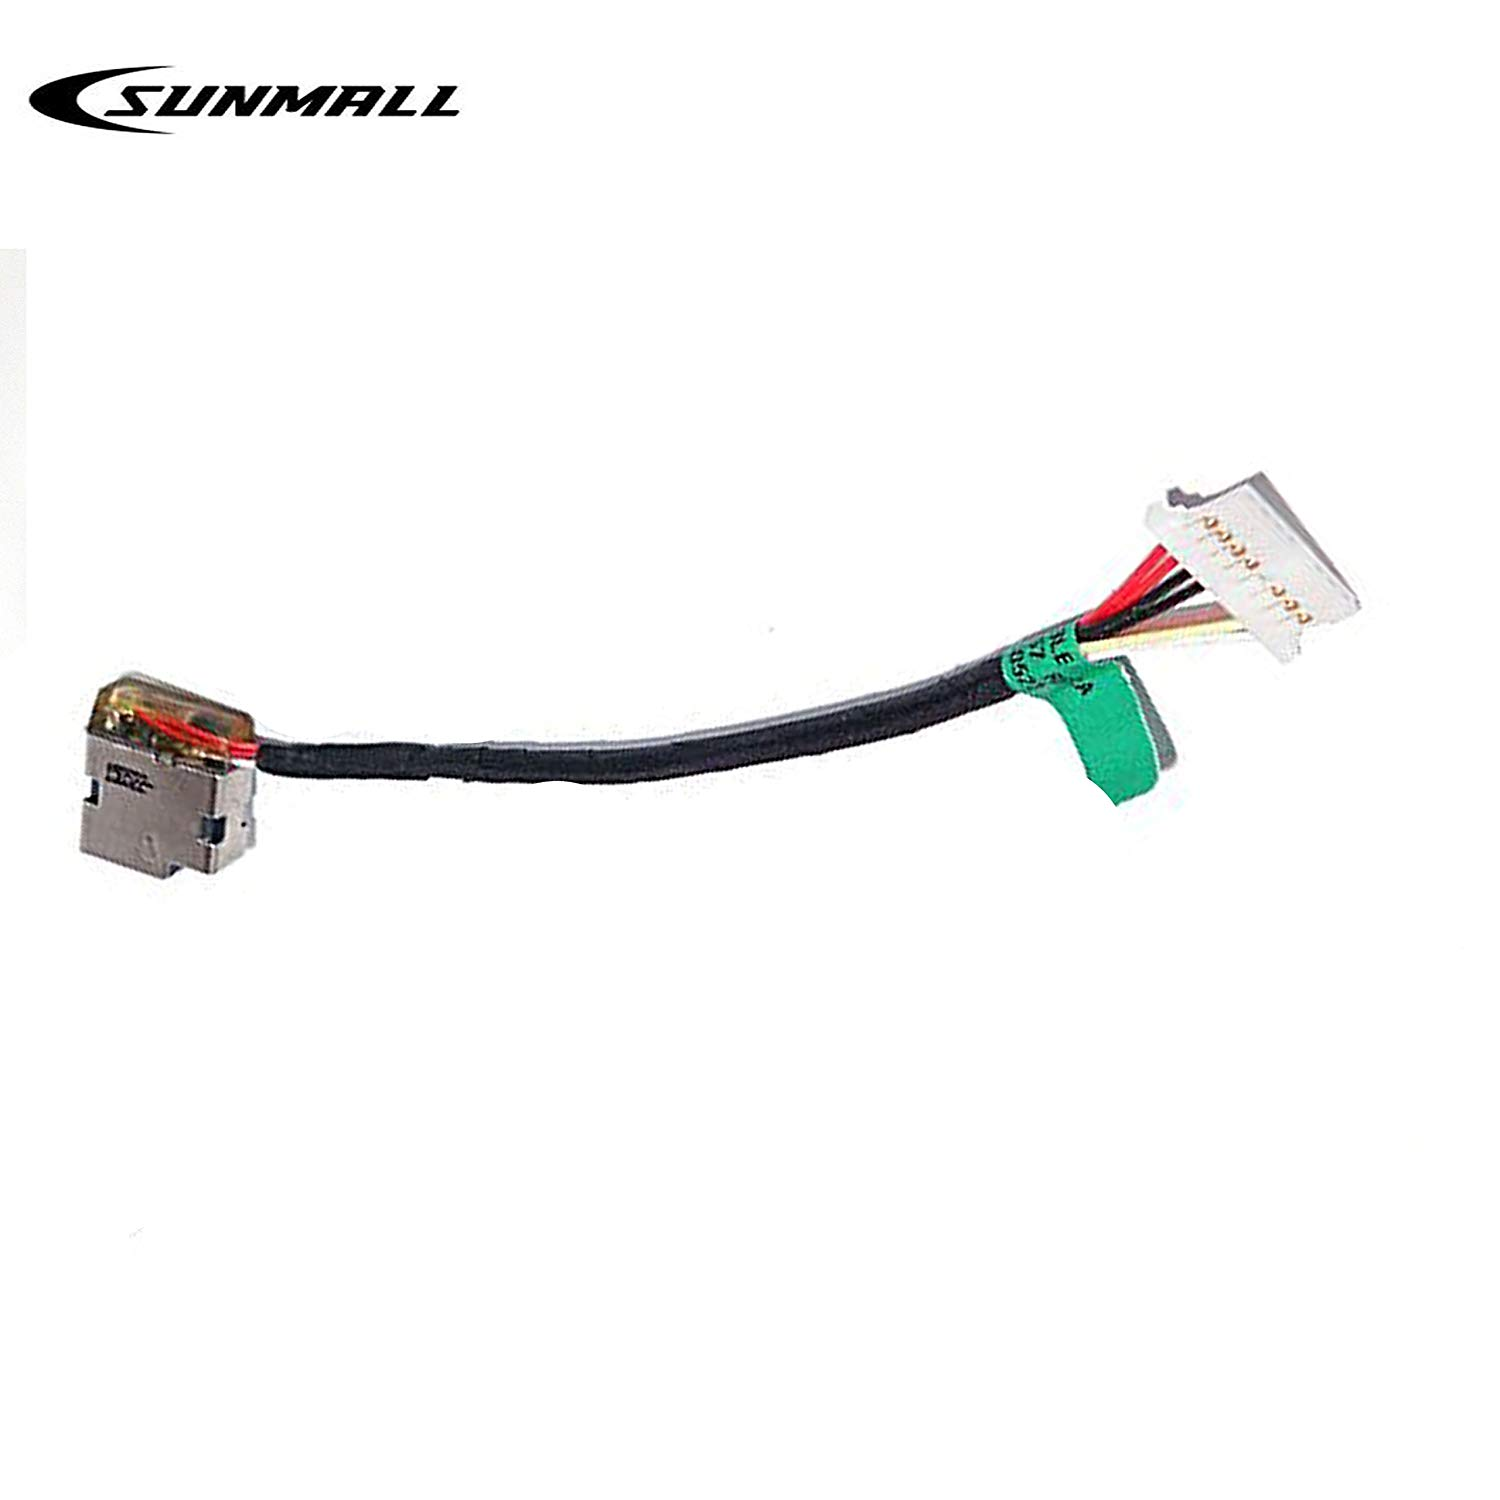 SUNMALL Replacement 799736-F57 799736-Y57 DC Jack Power Plug In Charging Port Connector Socket with Wire Cable Harness For hp 15-AC 15-AC163NR 15-AC063NR 15-AC113CL 15-AC121DX 15-AC161NR Series Laptop